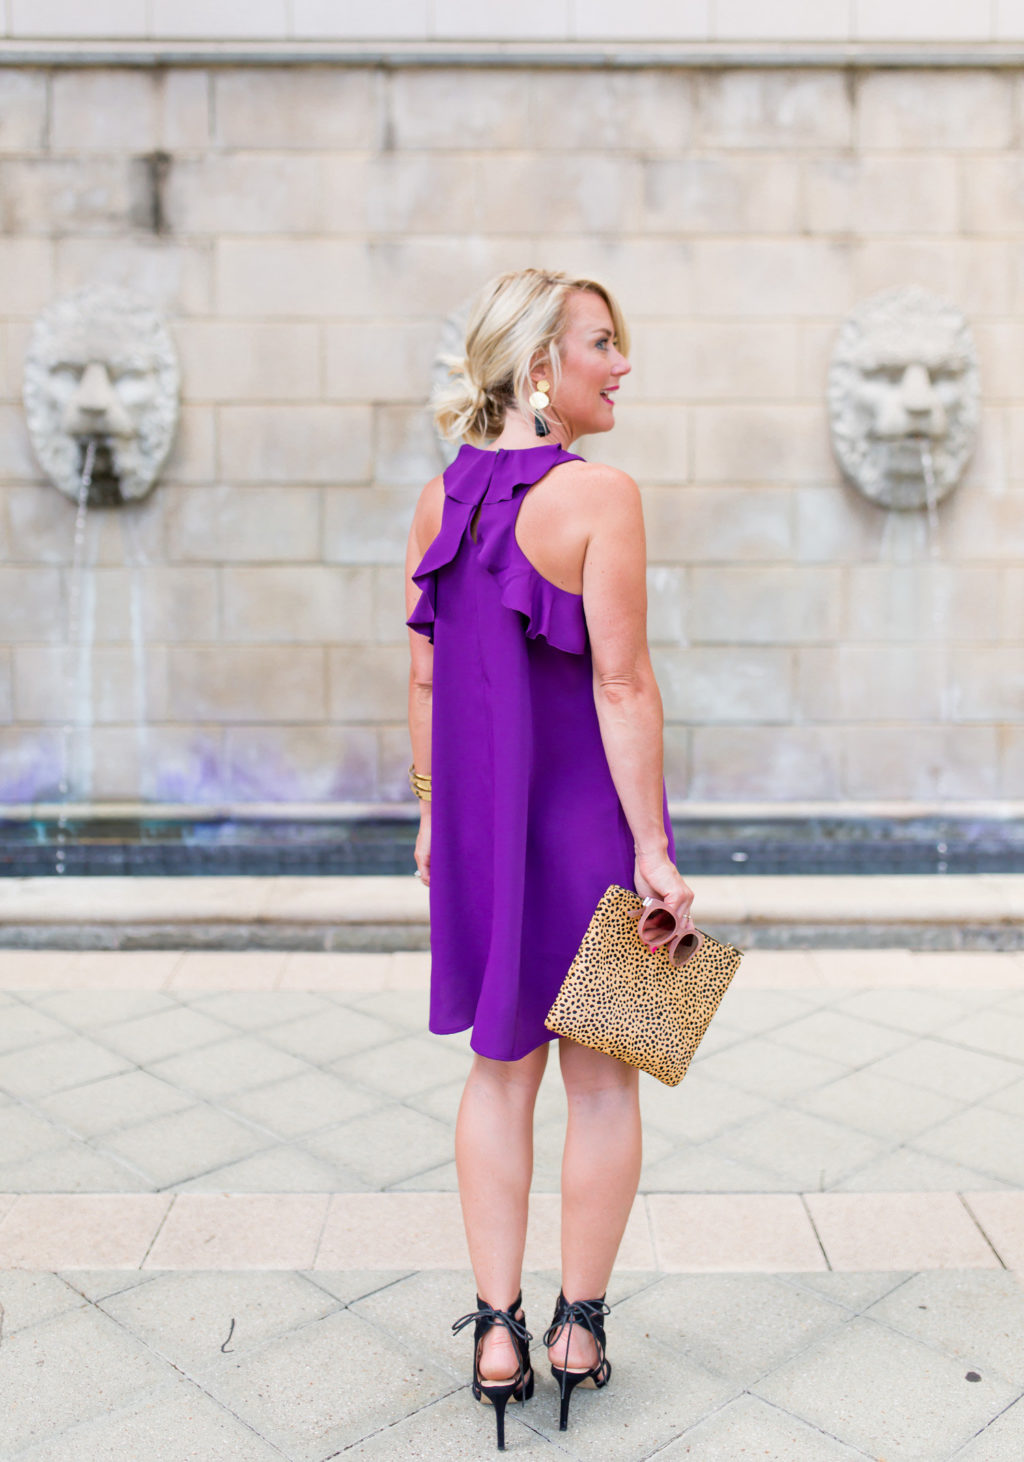 LOFT racerback purple ruffle dress for summer date night